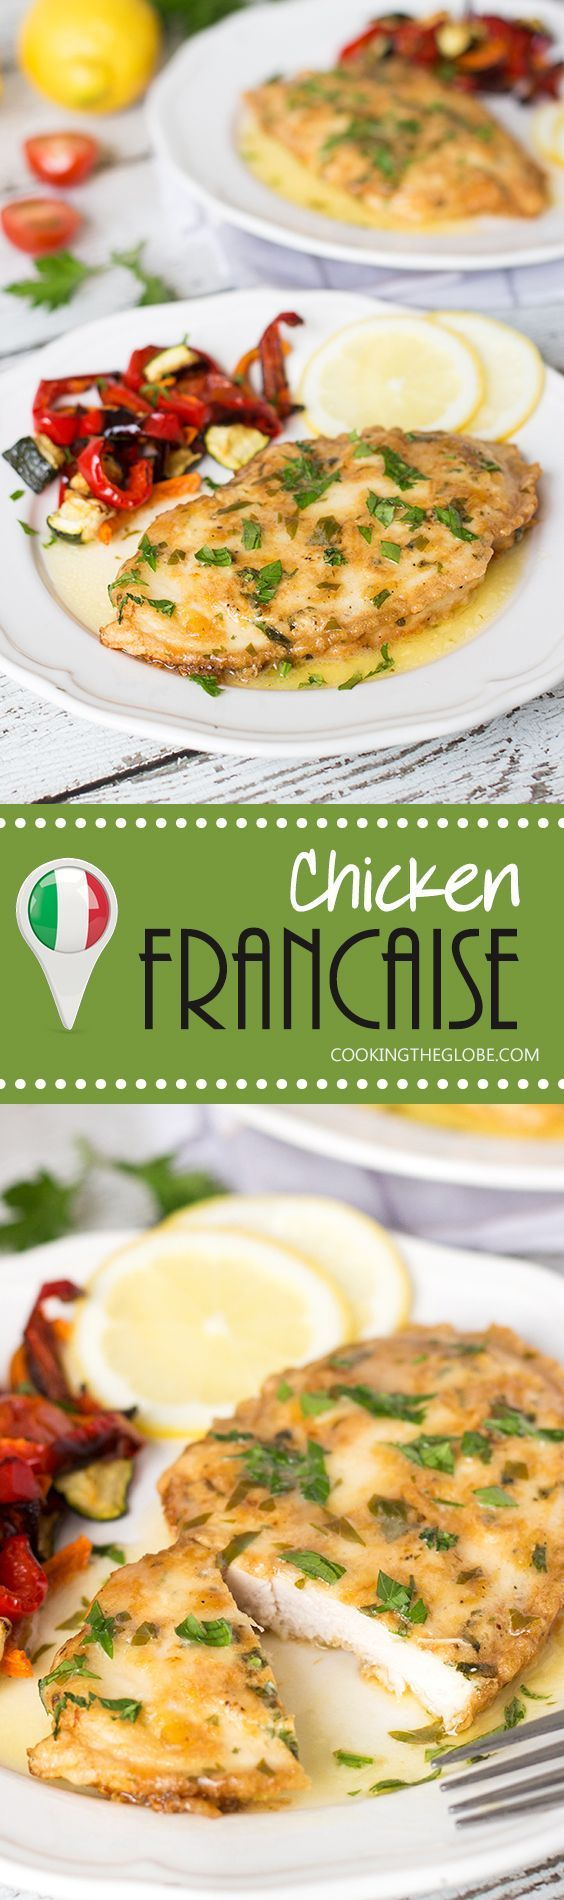 Chicken Francaise is an Italian-American dish consisting of cooked chicken breast cutlets with lemon wine sauce! | http://cookingtheglobe.com